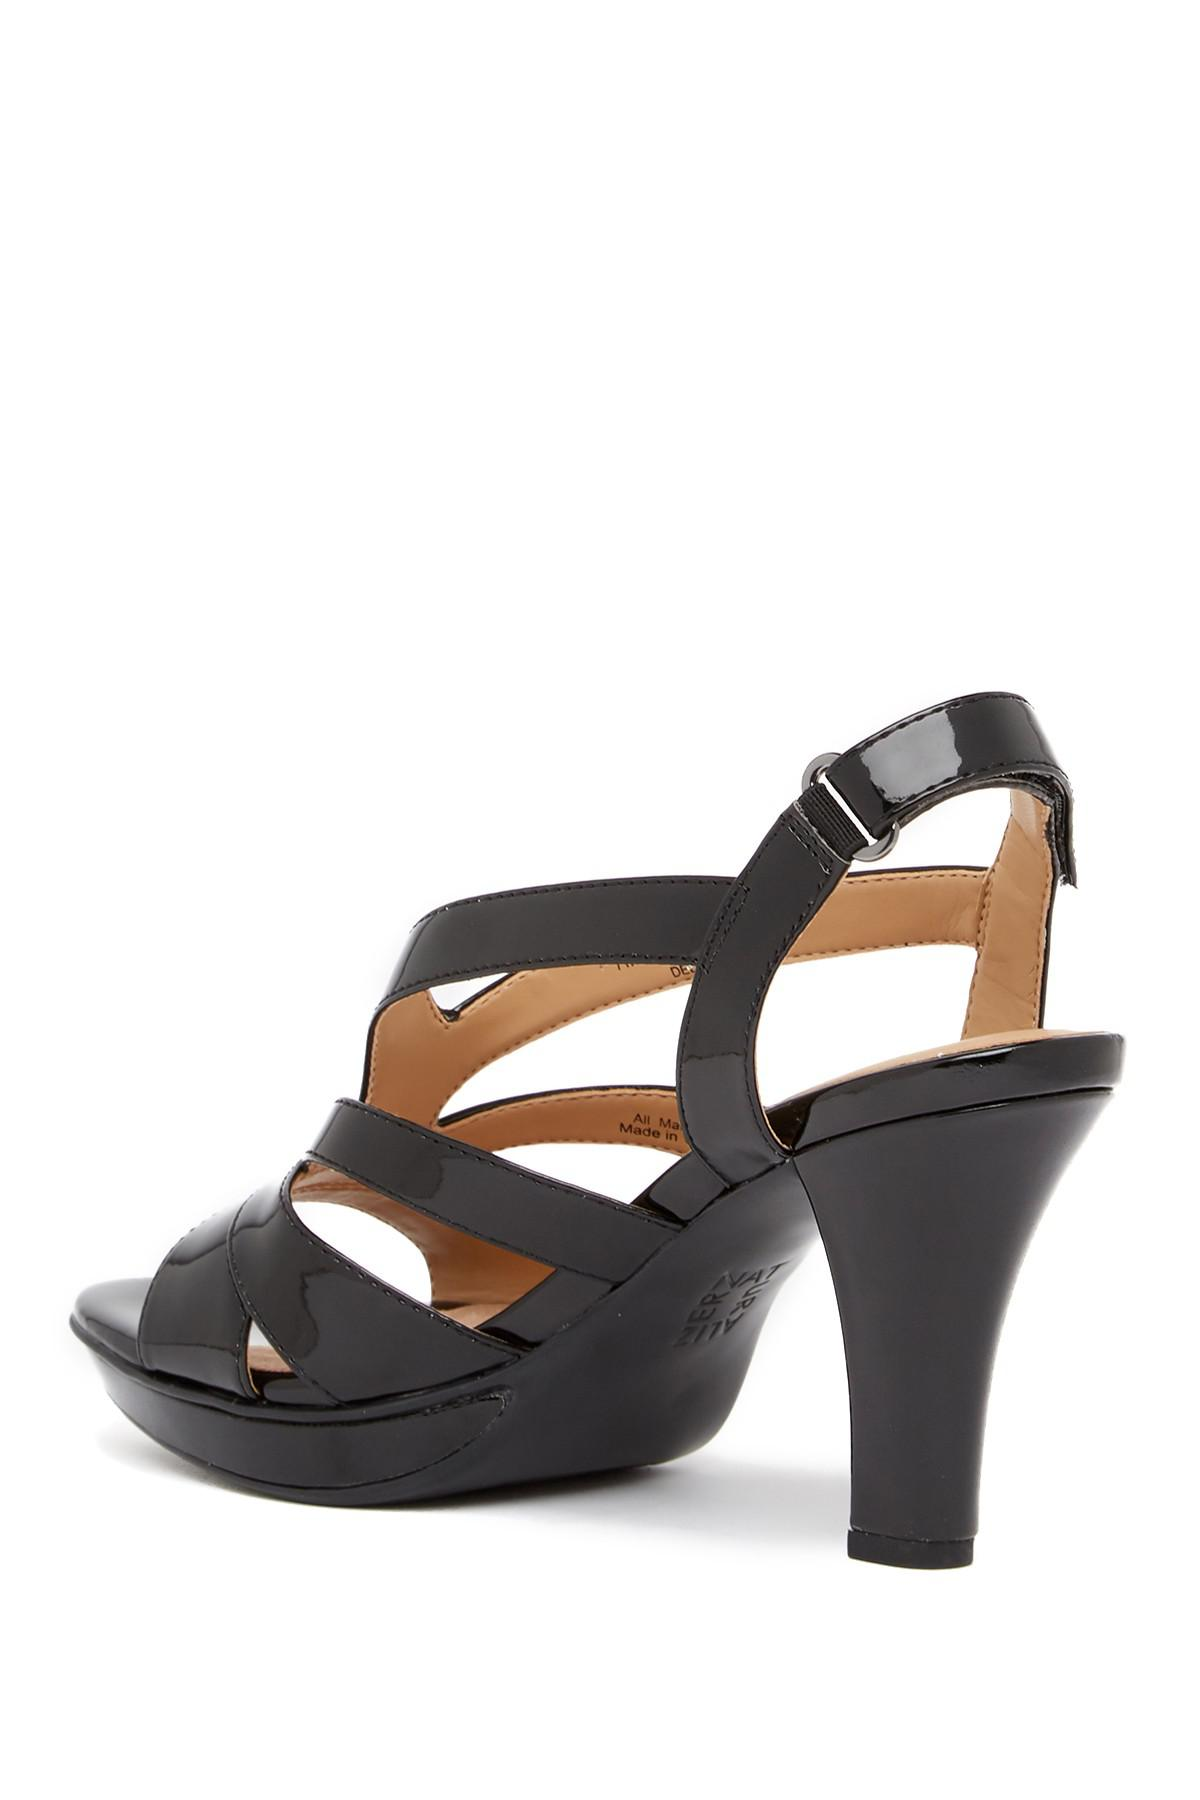 Naturalizer Delfinia Leather Heel Sandal - Wide Width Available GW70wbDJFq